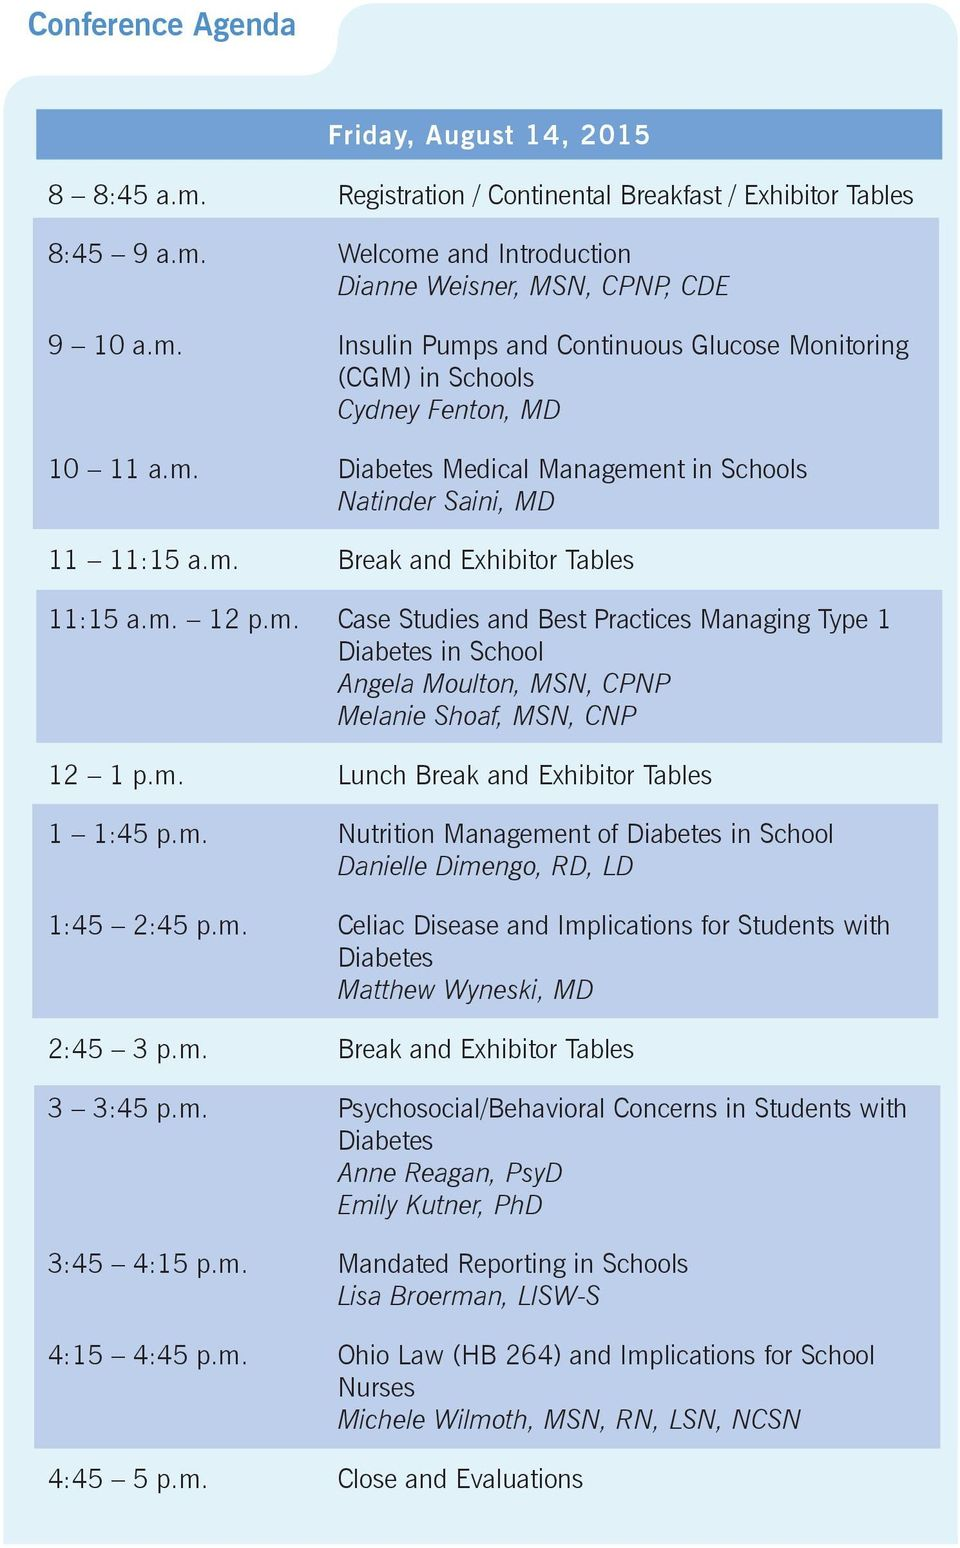 m. 12 p.m. Case Studies and Best Practices Managing Type 1 Diabetes in School Angela Moulton, MSN, CPNP Melanie Shoaf, MSN, CNP 12 1 p.m. Lunch Break and Exhibitor Tables 1 1:45 p.m. Nutrition Management of Diabetes in School Danielle Dimengo, RD, LD 1:45 2:45 p.